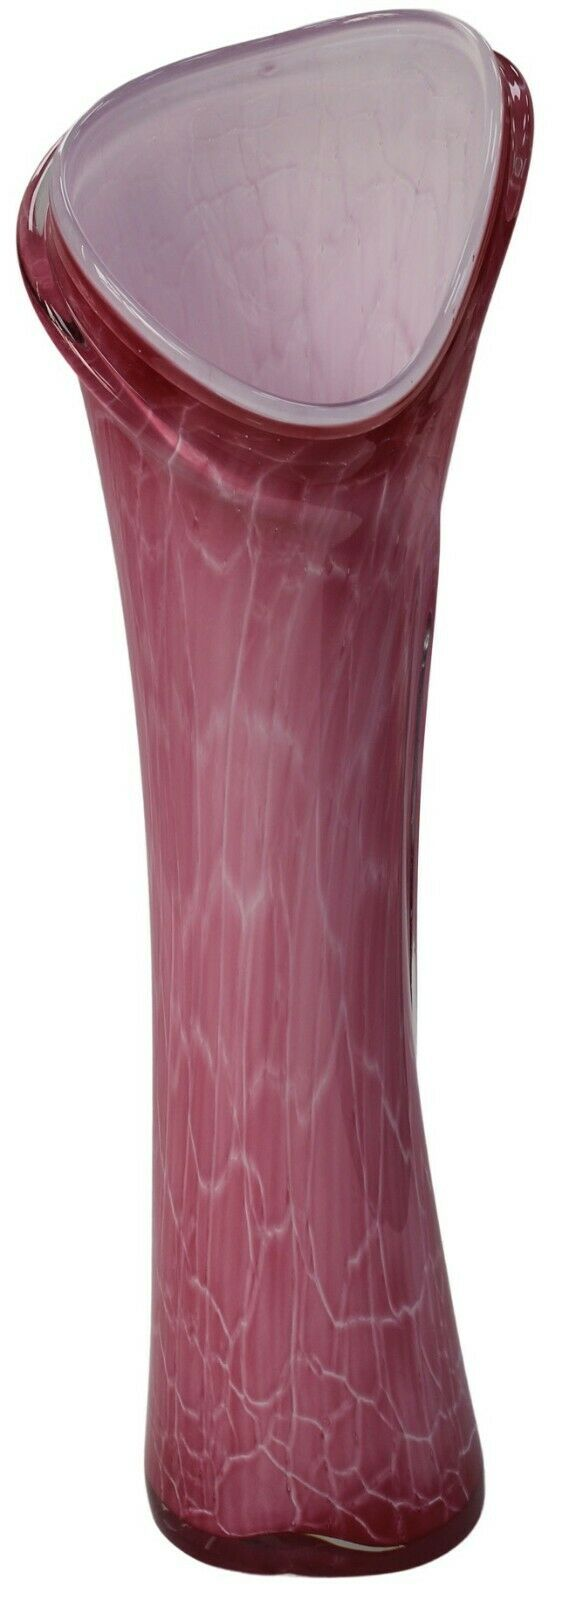 59cm Tall Floor Standing Glass Vase Sicily Tall Lily Vase Pink Pearl